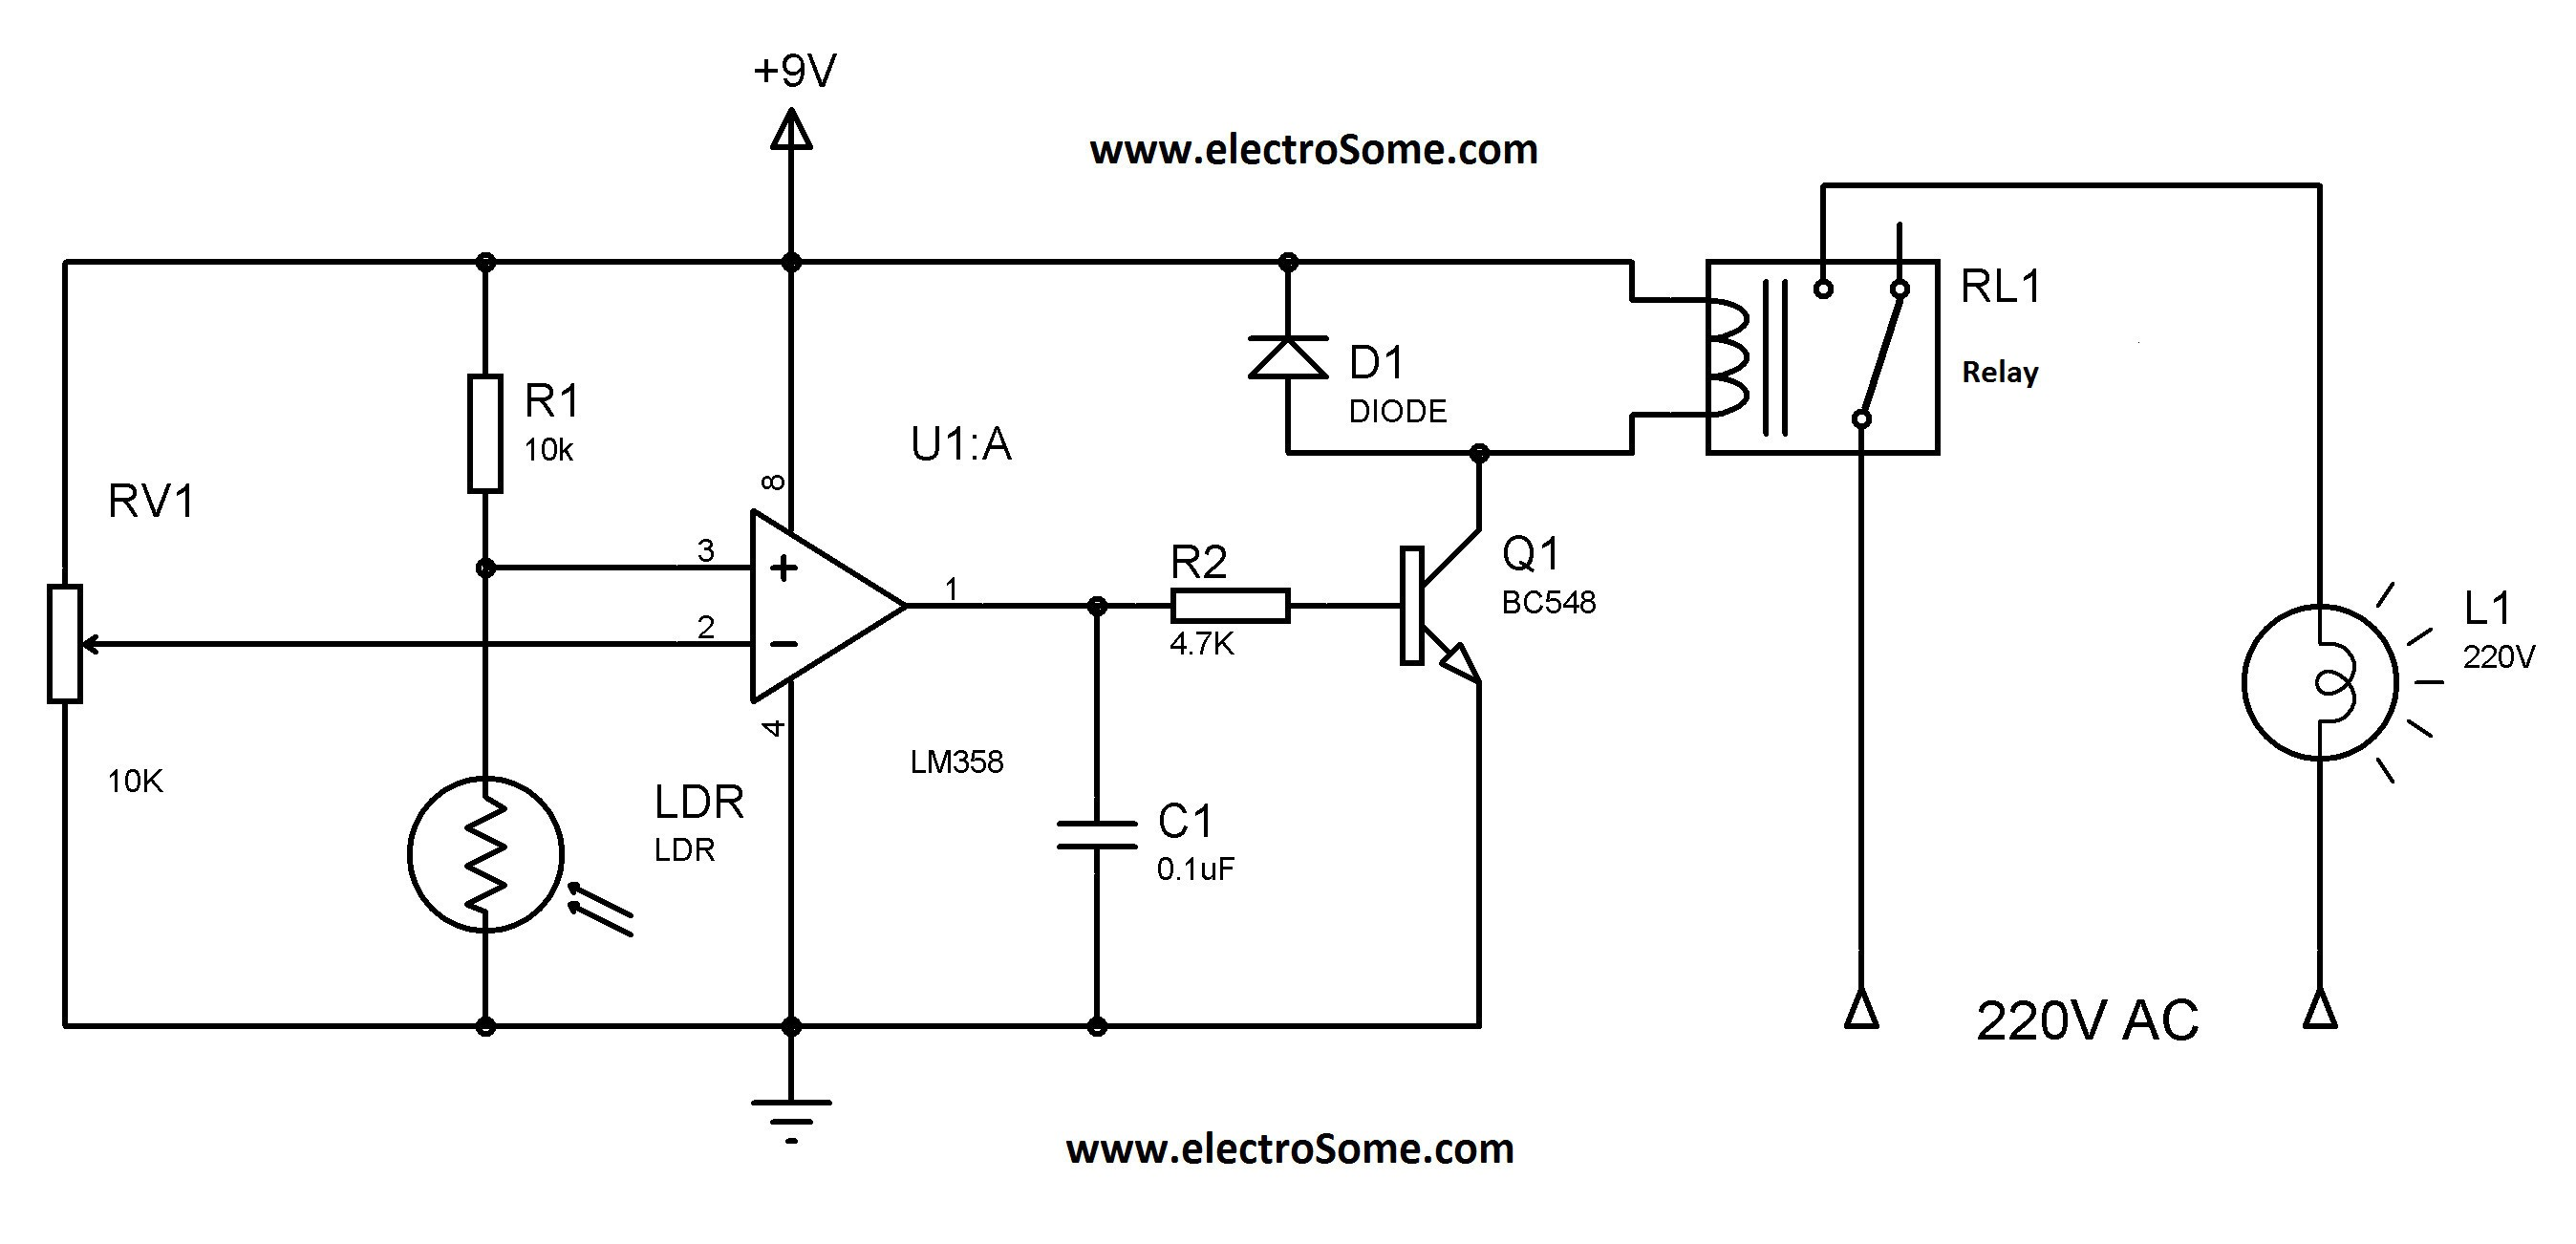 Solar Powered Street Light Circuit Diagram light Switch Wiring Diagram Uk  Craluxlighting Wall Pull Cord